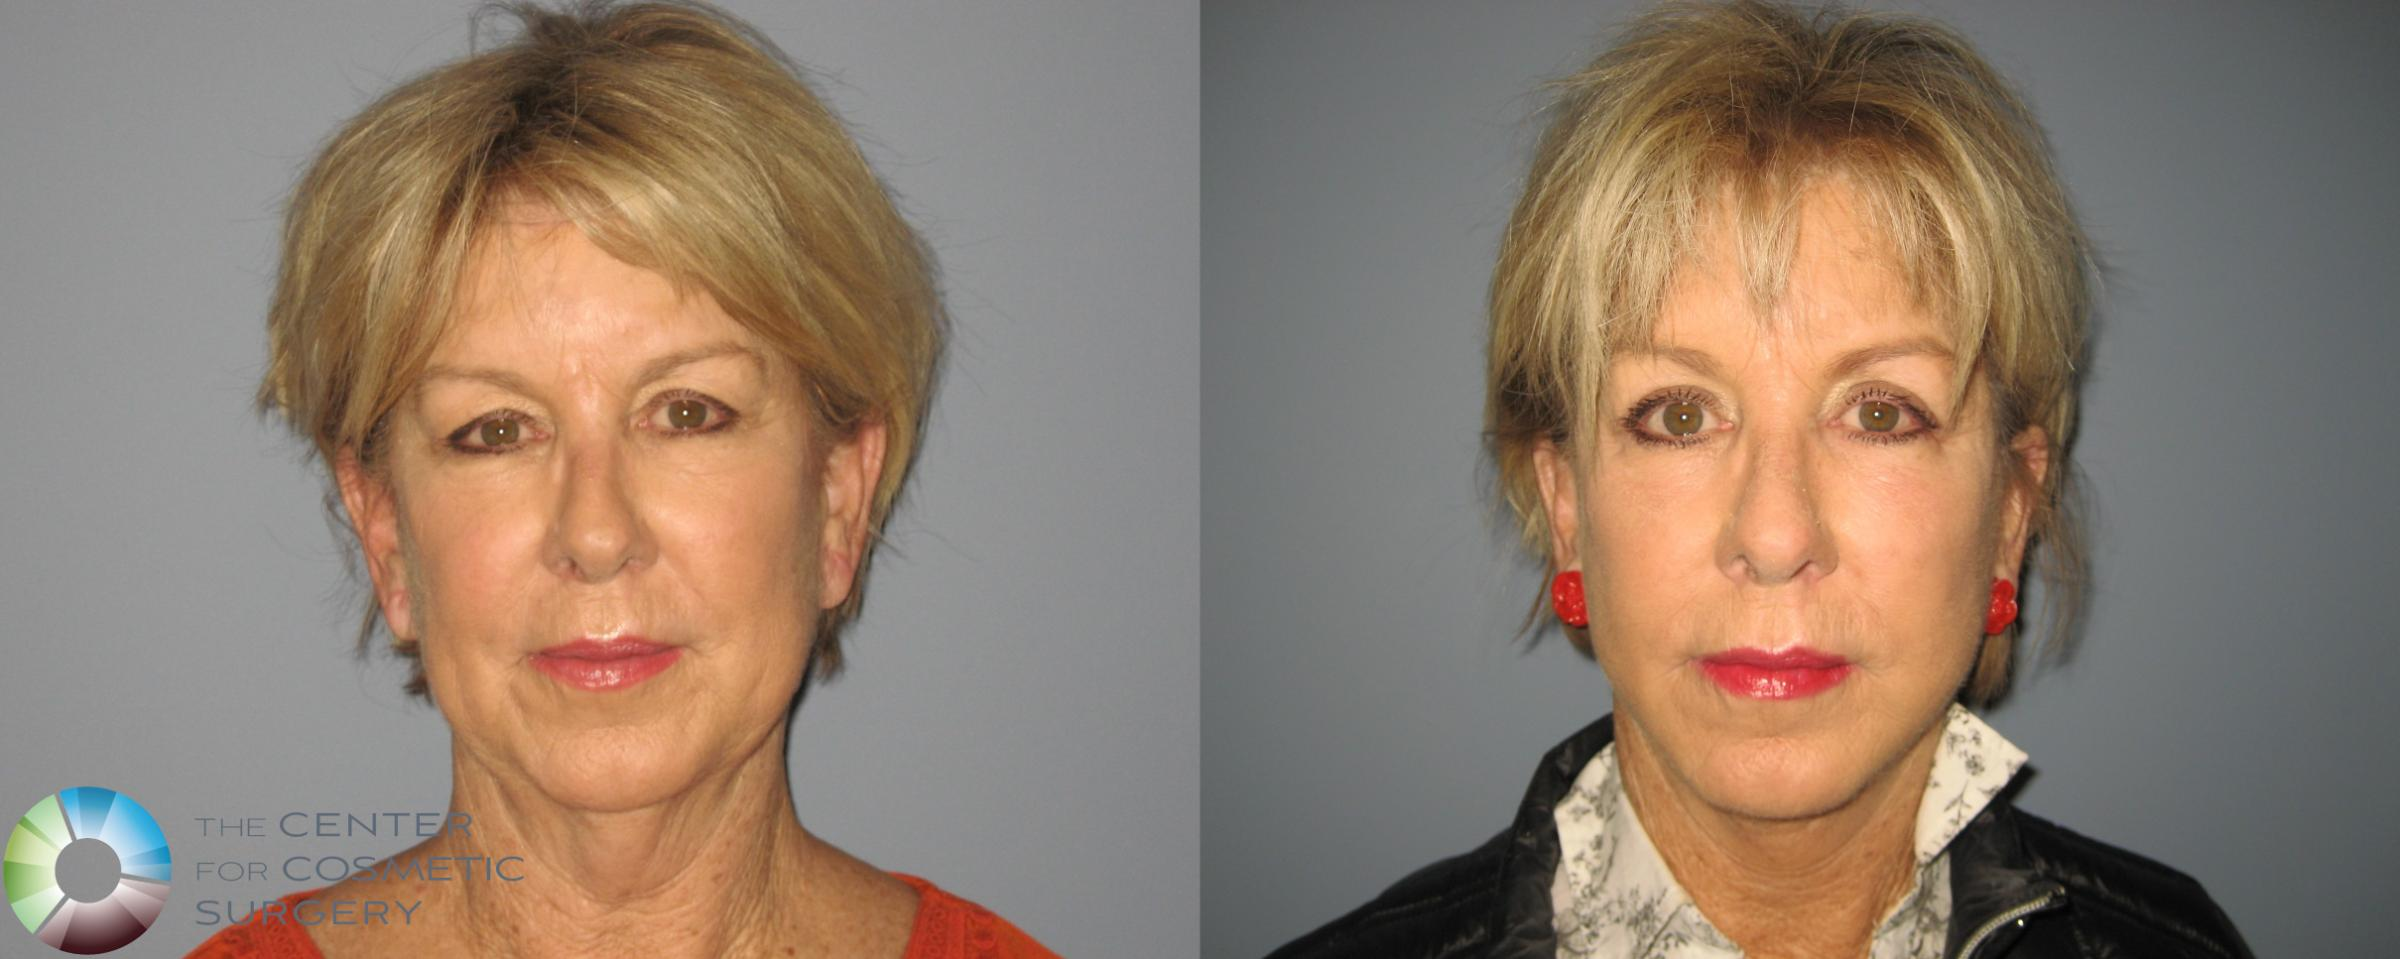 Eyelid Lift Case 461 Before & After View #1 | Golden, CO | The Center for Cosmetic Surgery